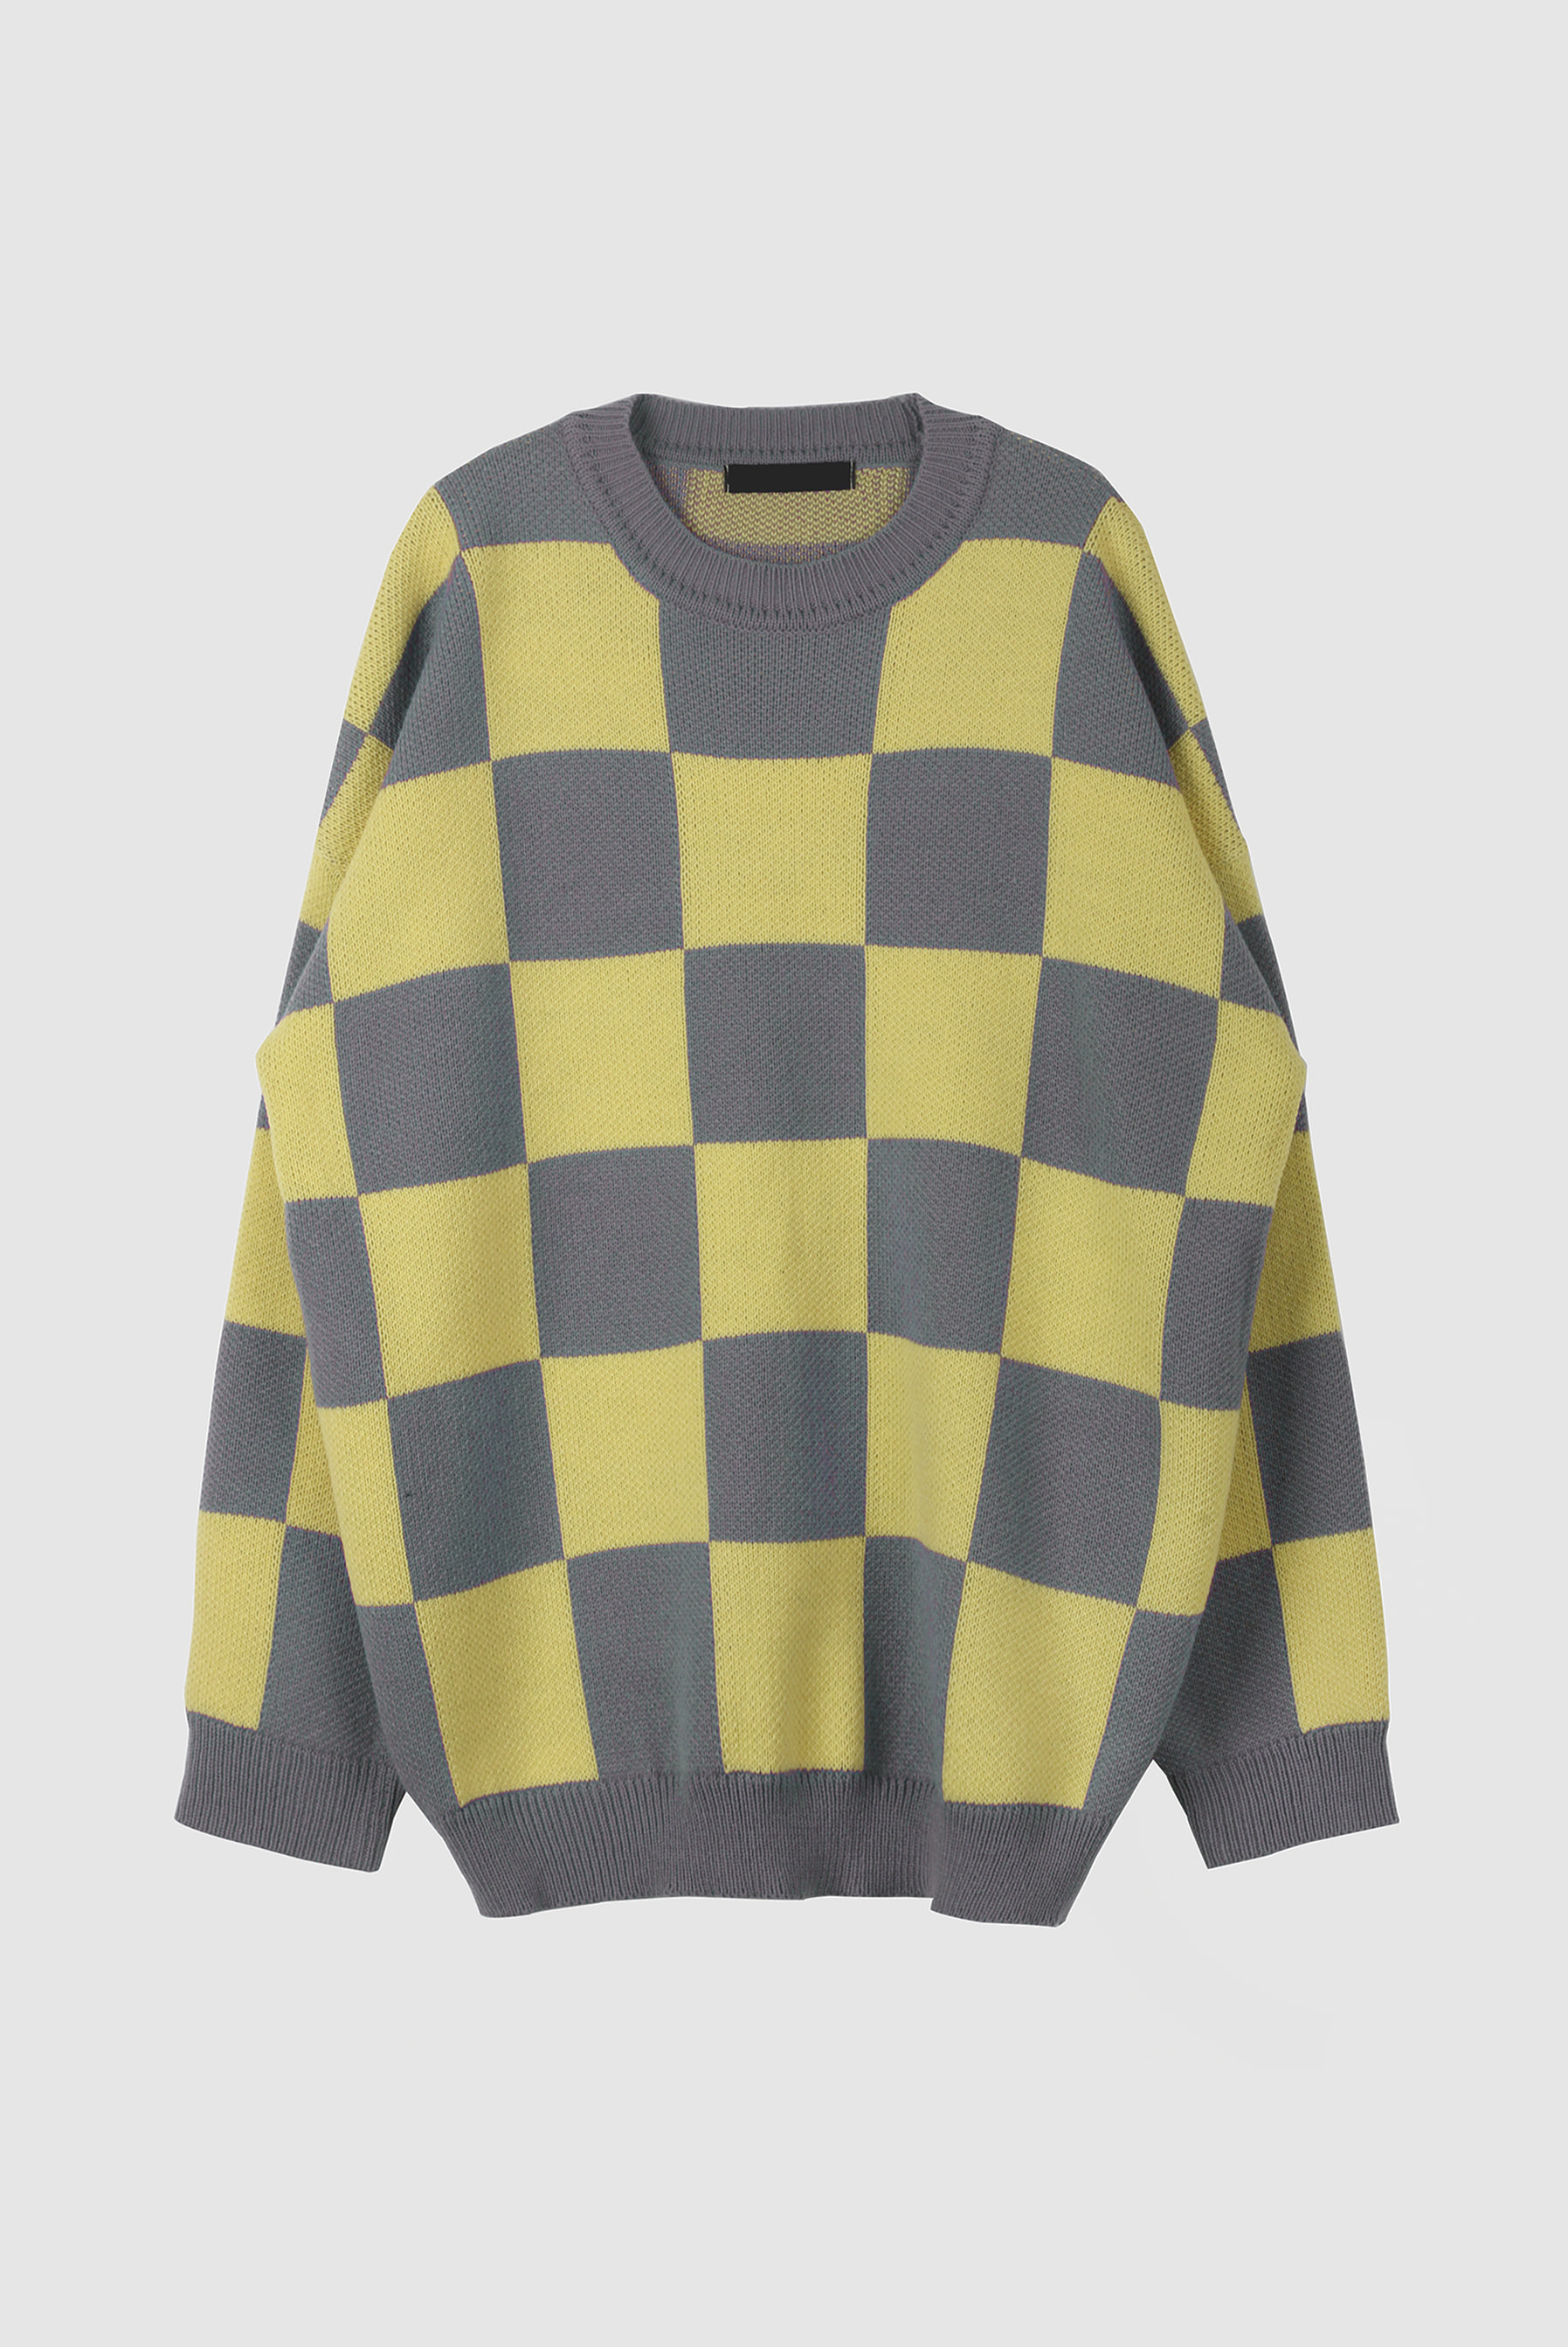 Chess_Board Knit